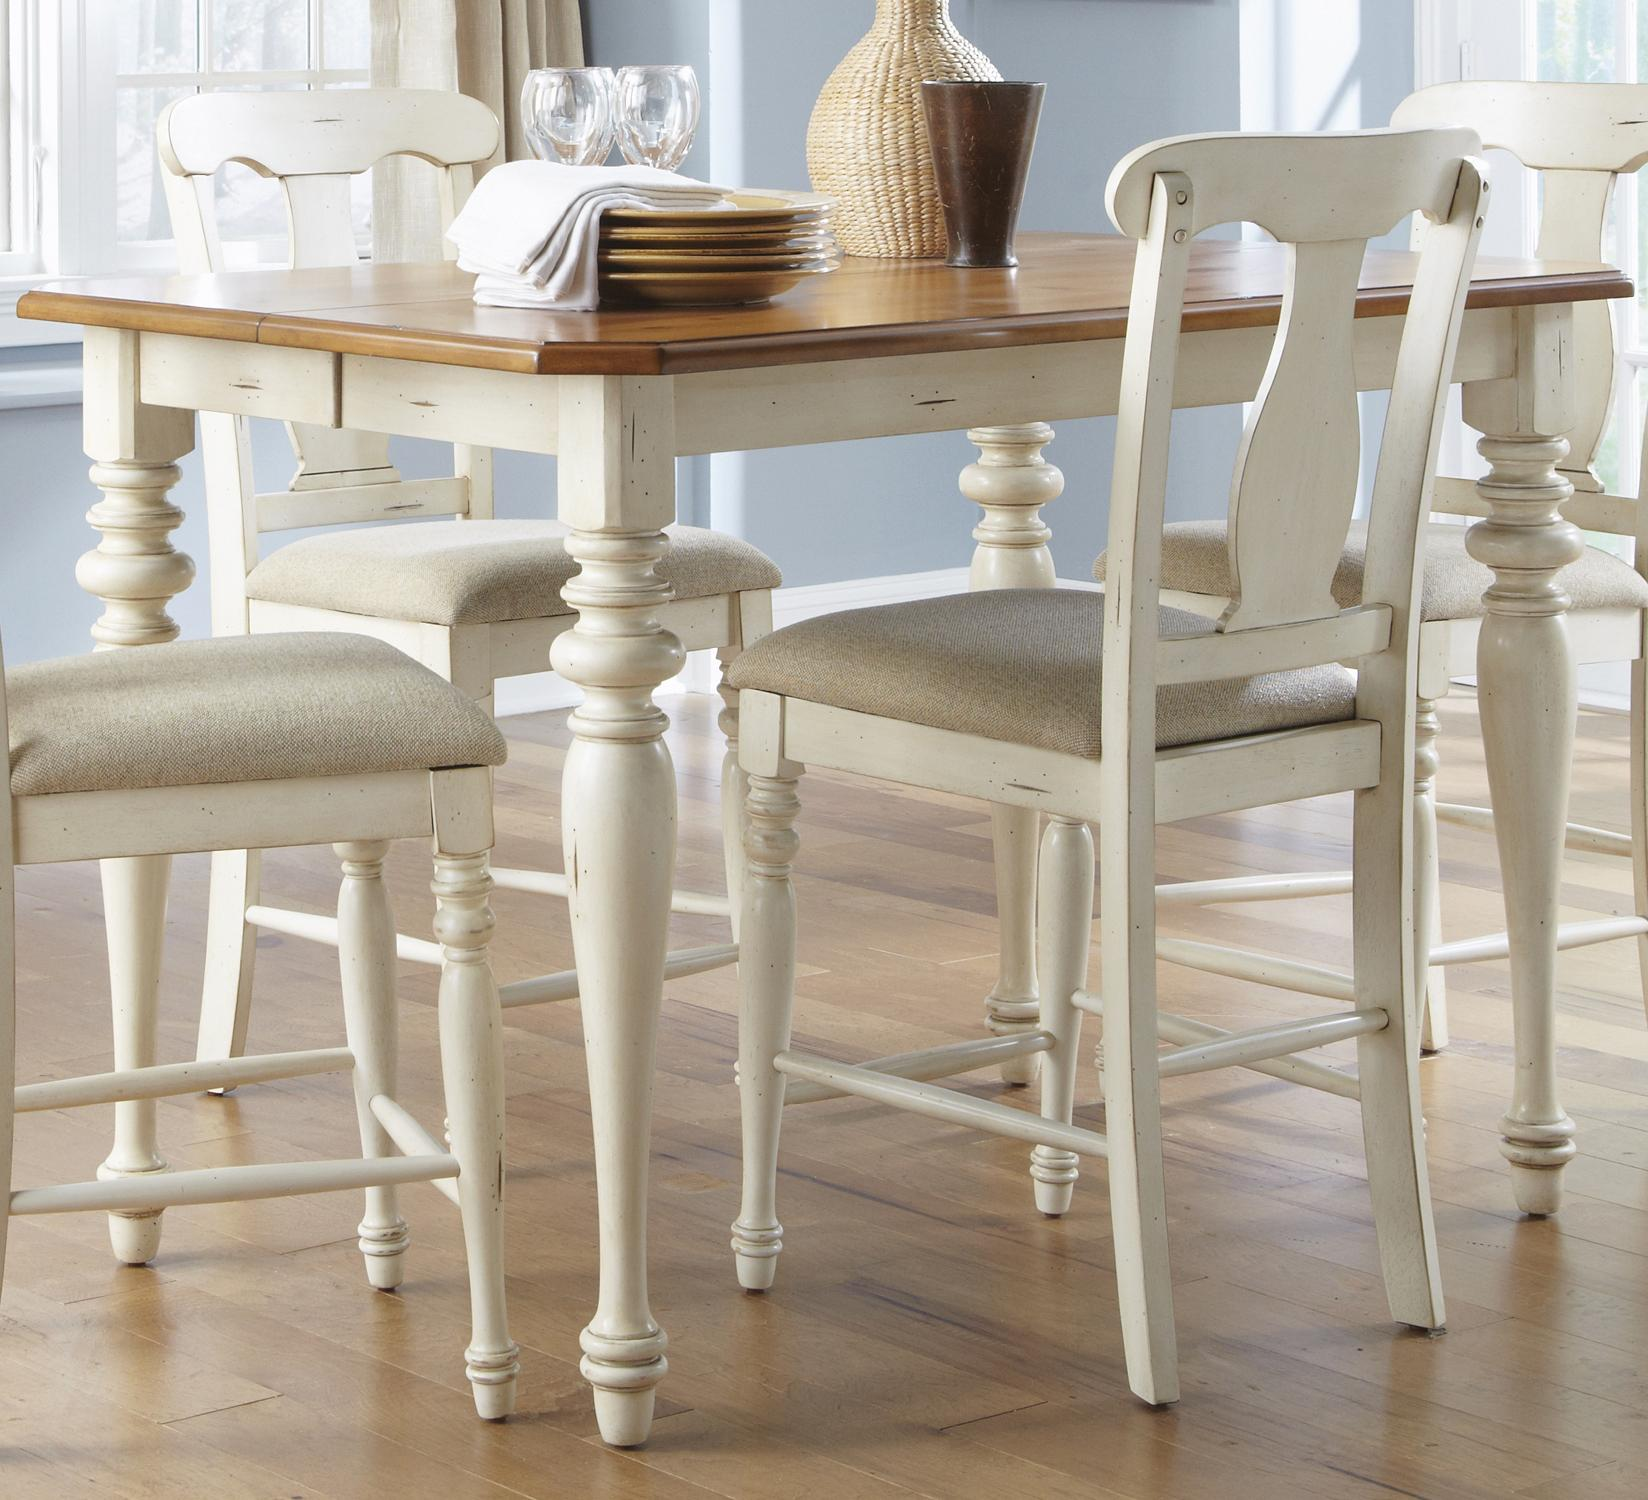 Ocean Isle Gathering Height Dining Table By Liberty Furniture At Rooms For Less